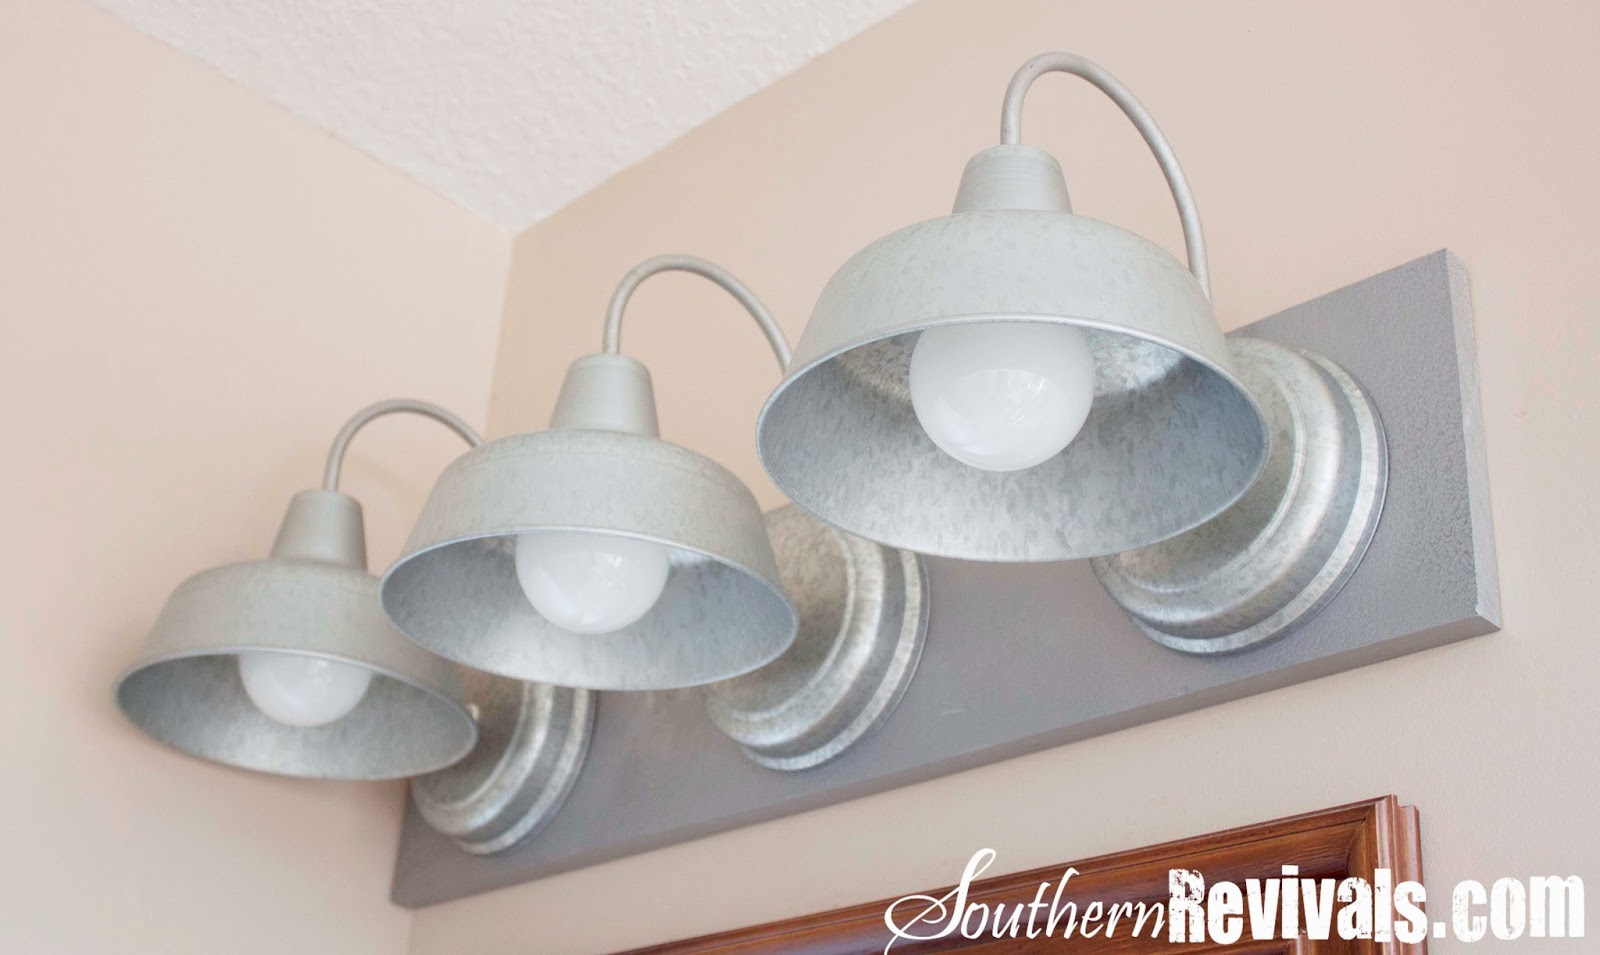 DIY Triple Galvanized Gooseneck Vanity Light Fixture for under USD 100 - Southern Revivals